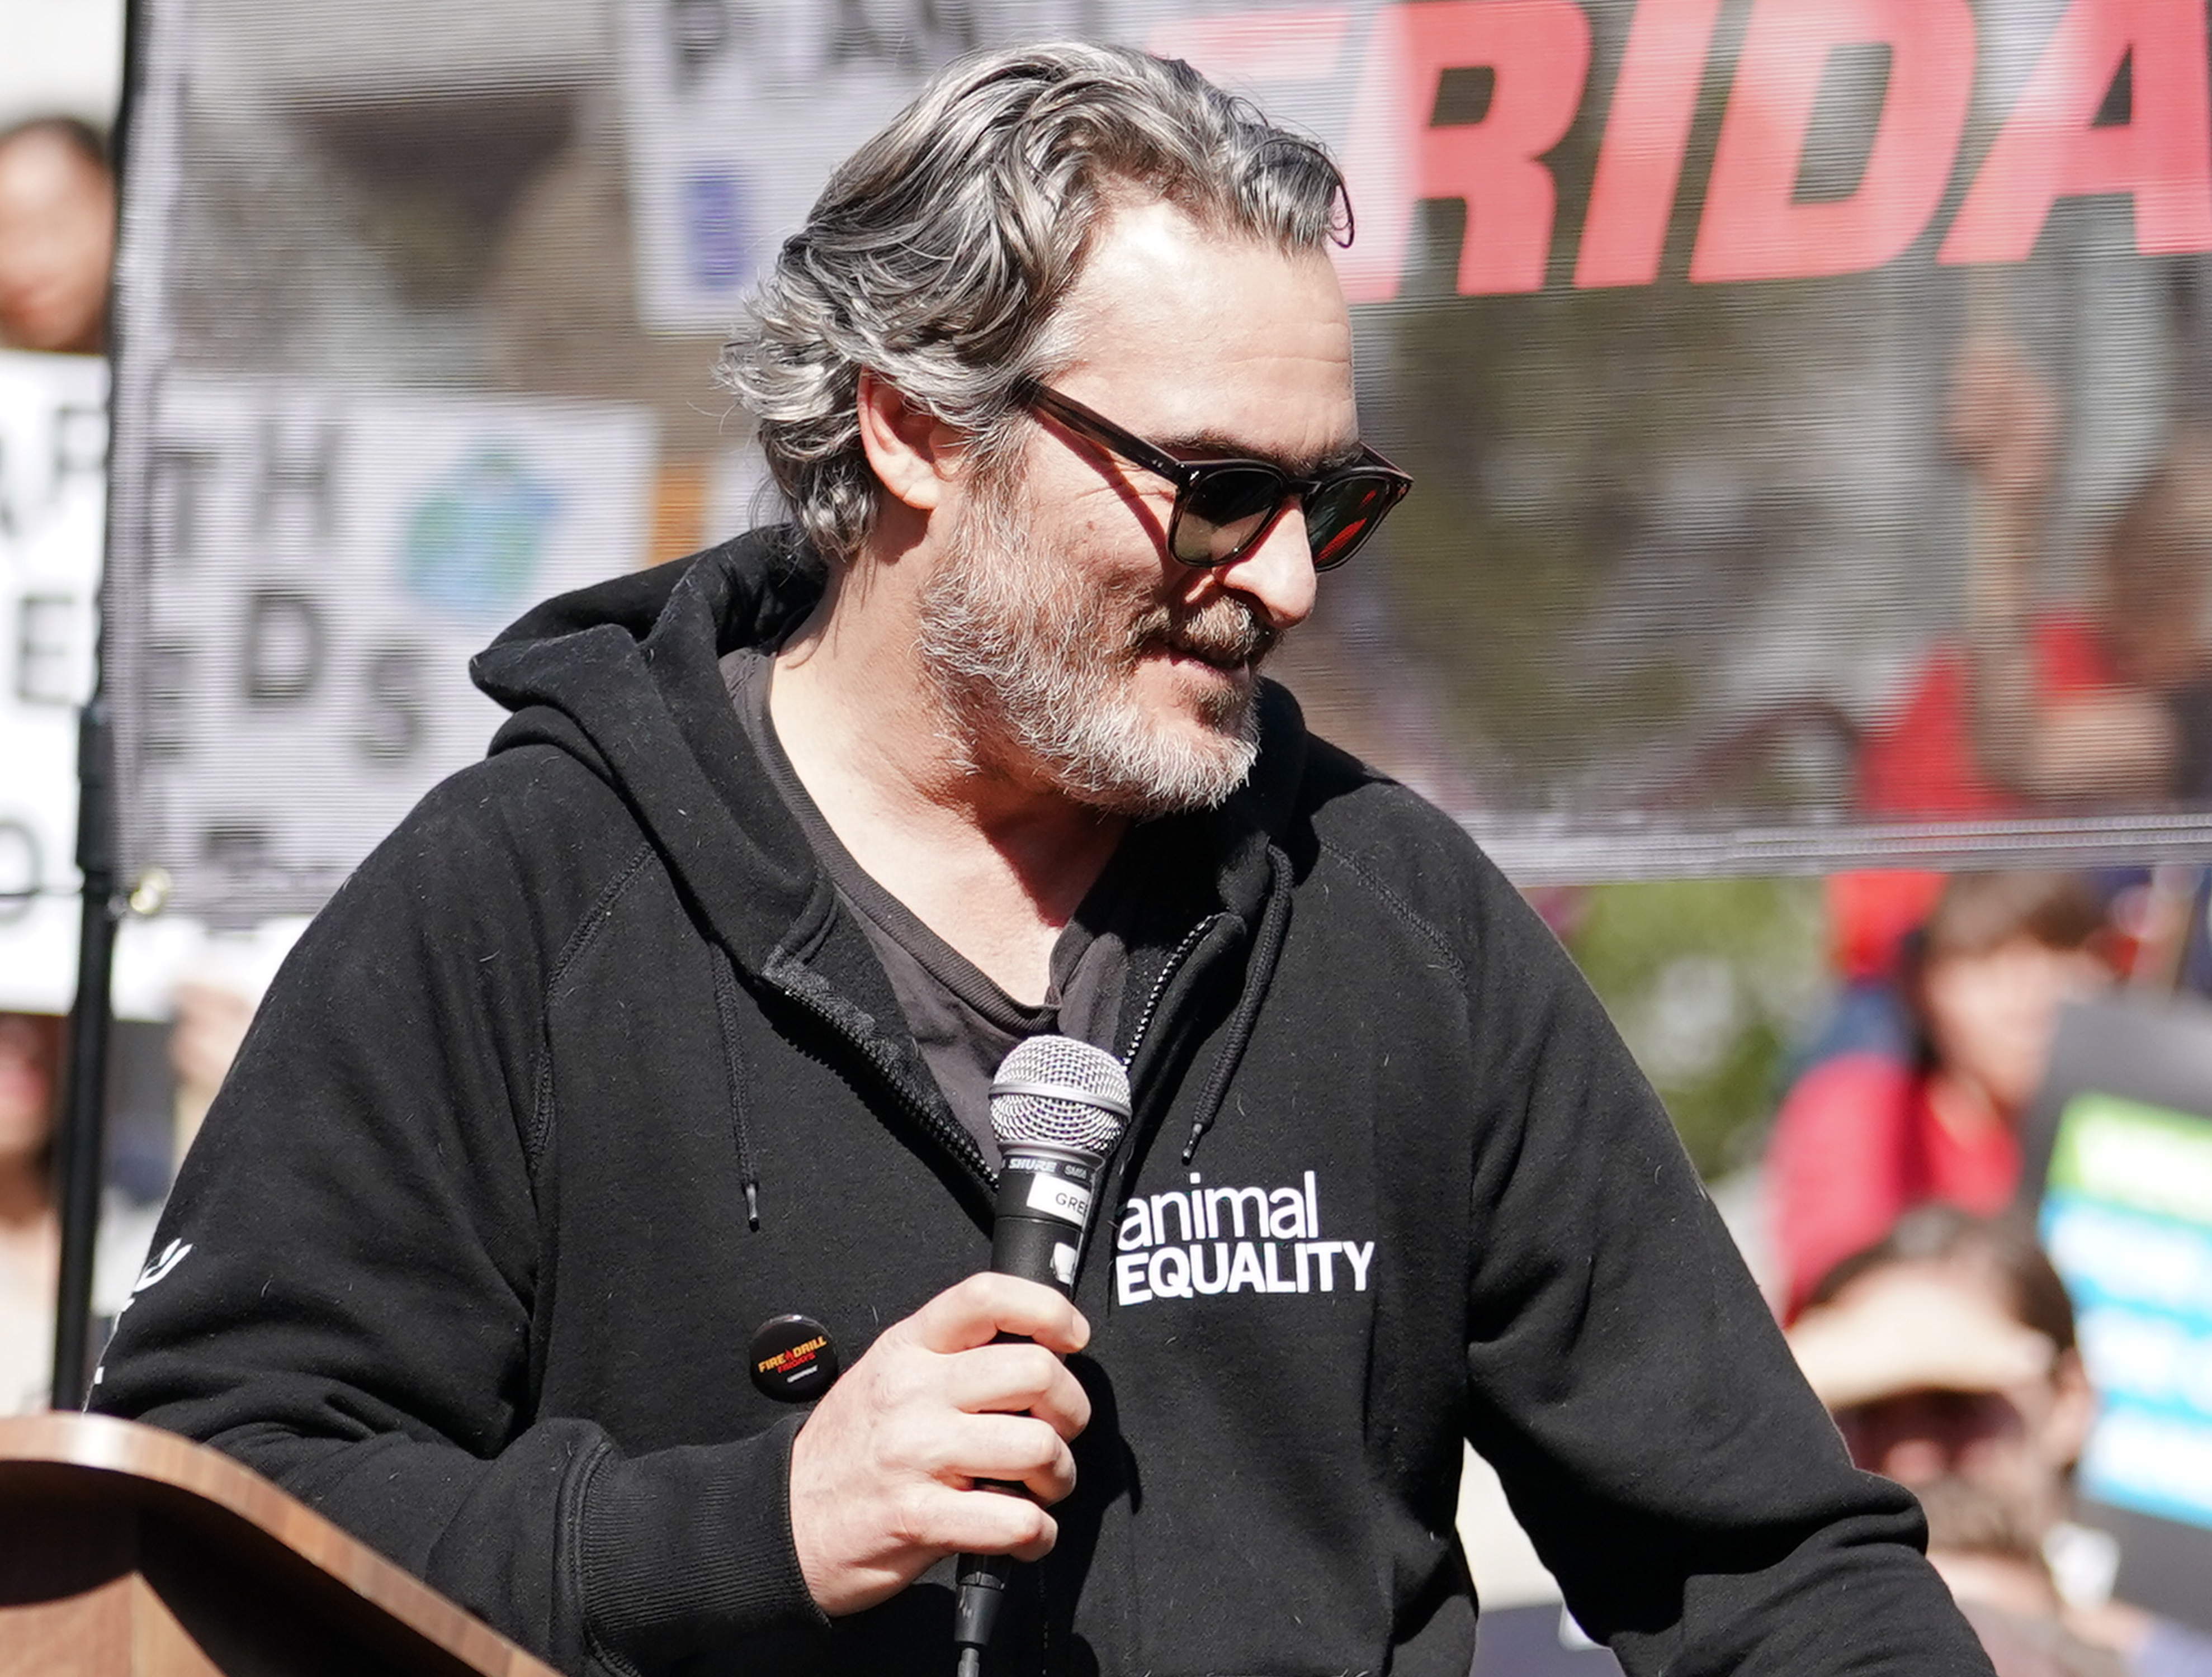 Joaquin Phoenix participates in Jane Fonda's Fire Drill Friday climate change rally at Los Angeles City Hall on February 07, 2020 in Los Angeles, California.